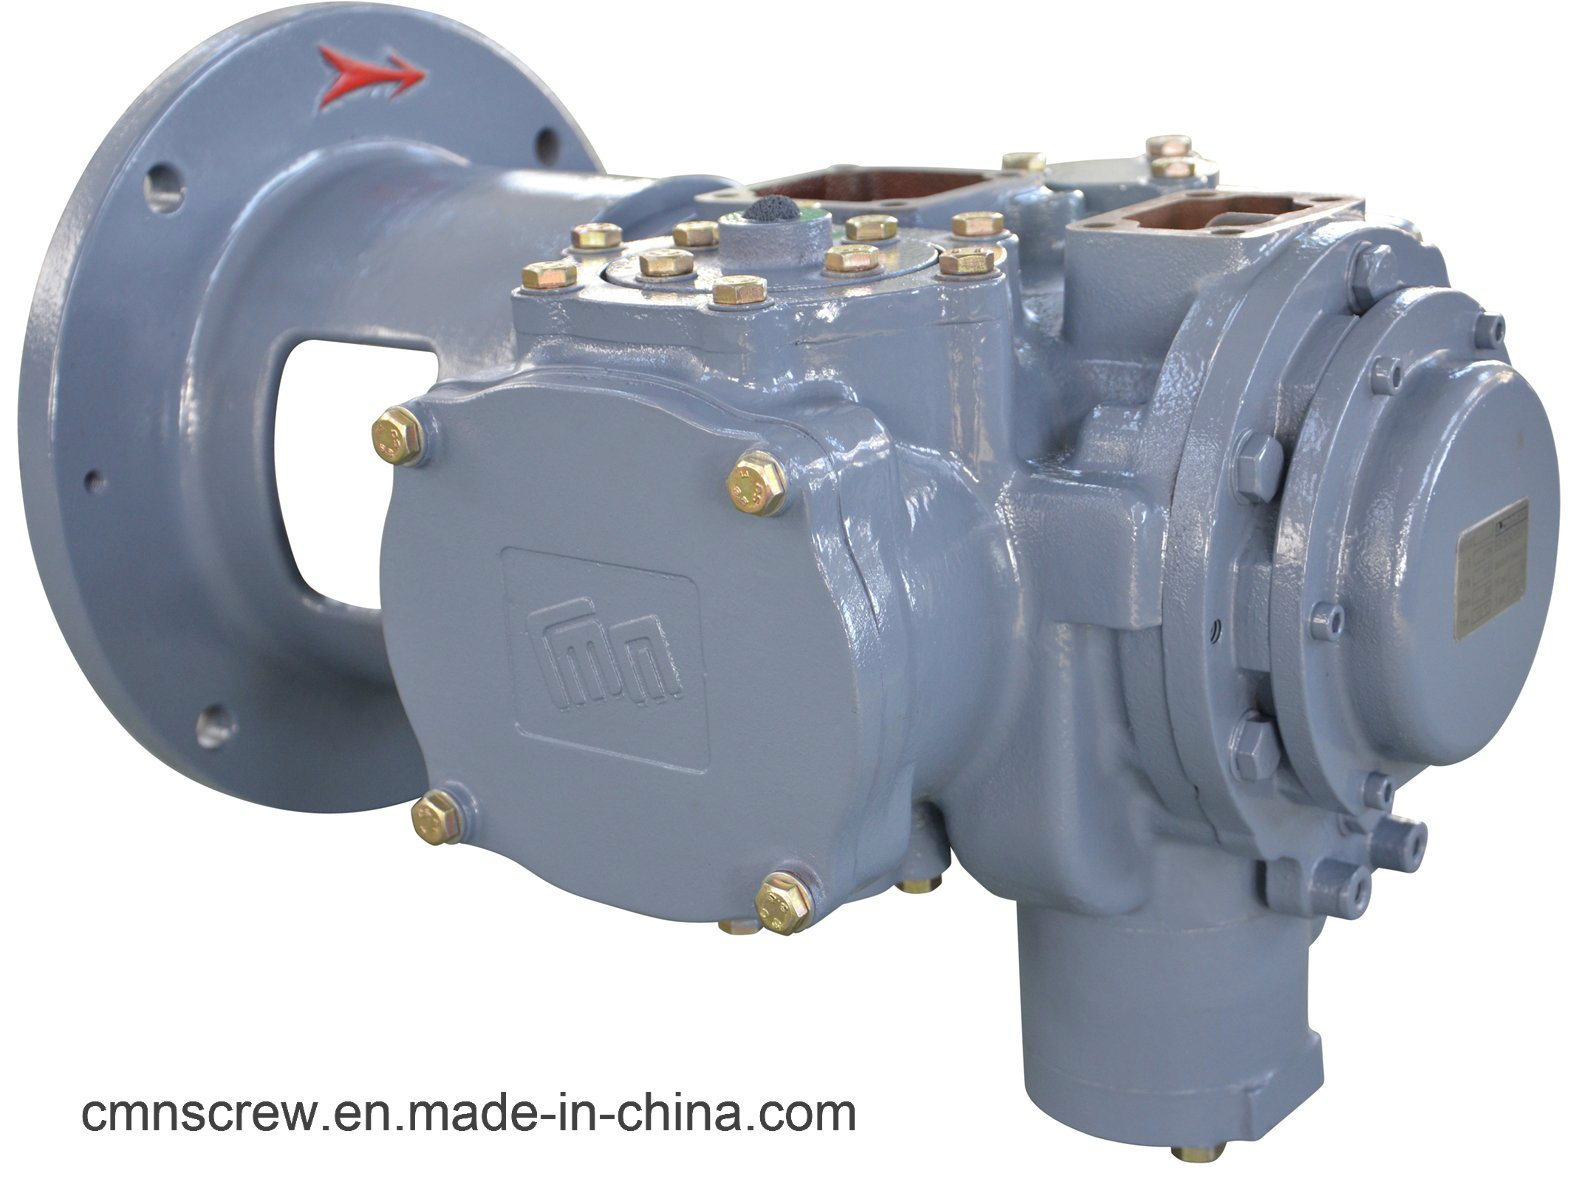 Micro Oil Screw Air Compressor (CMN Series)